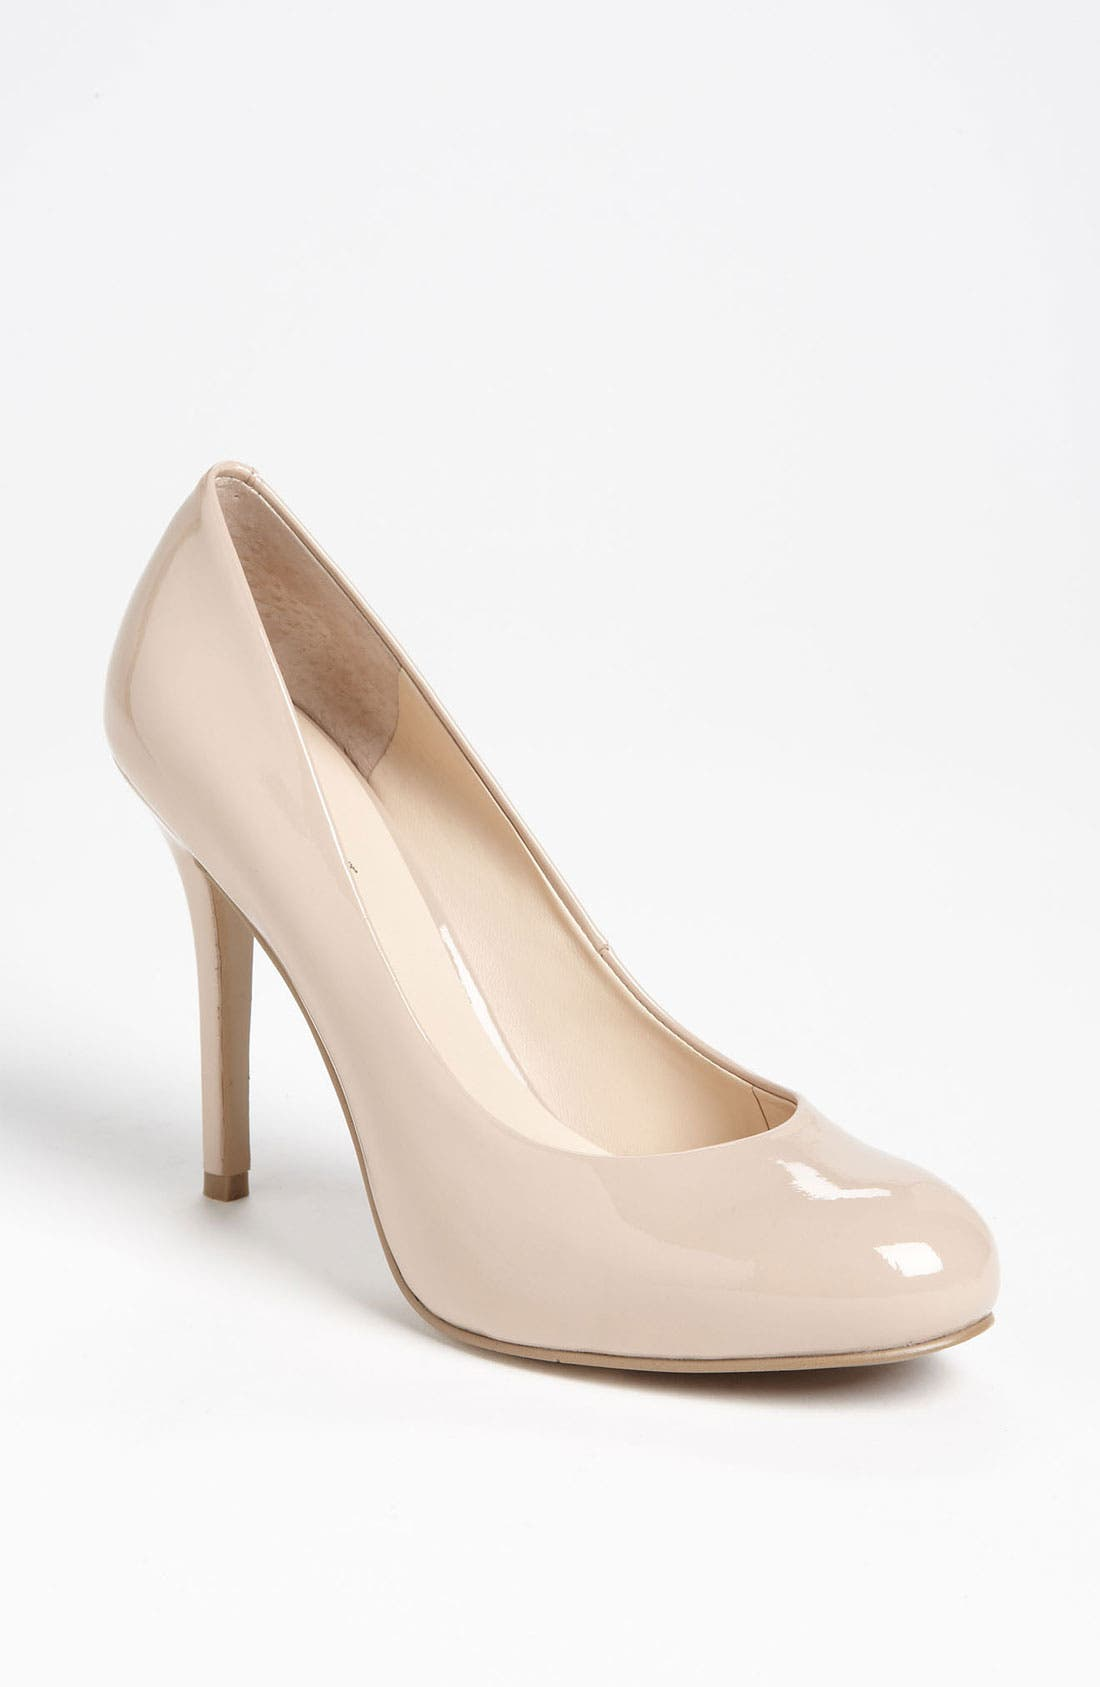 Main Image - Nine West 'Maximus' Pump